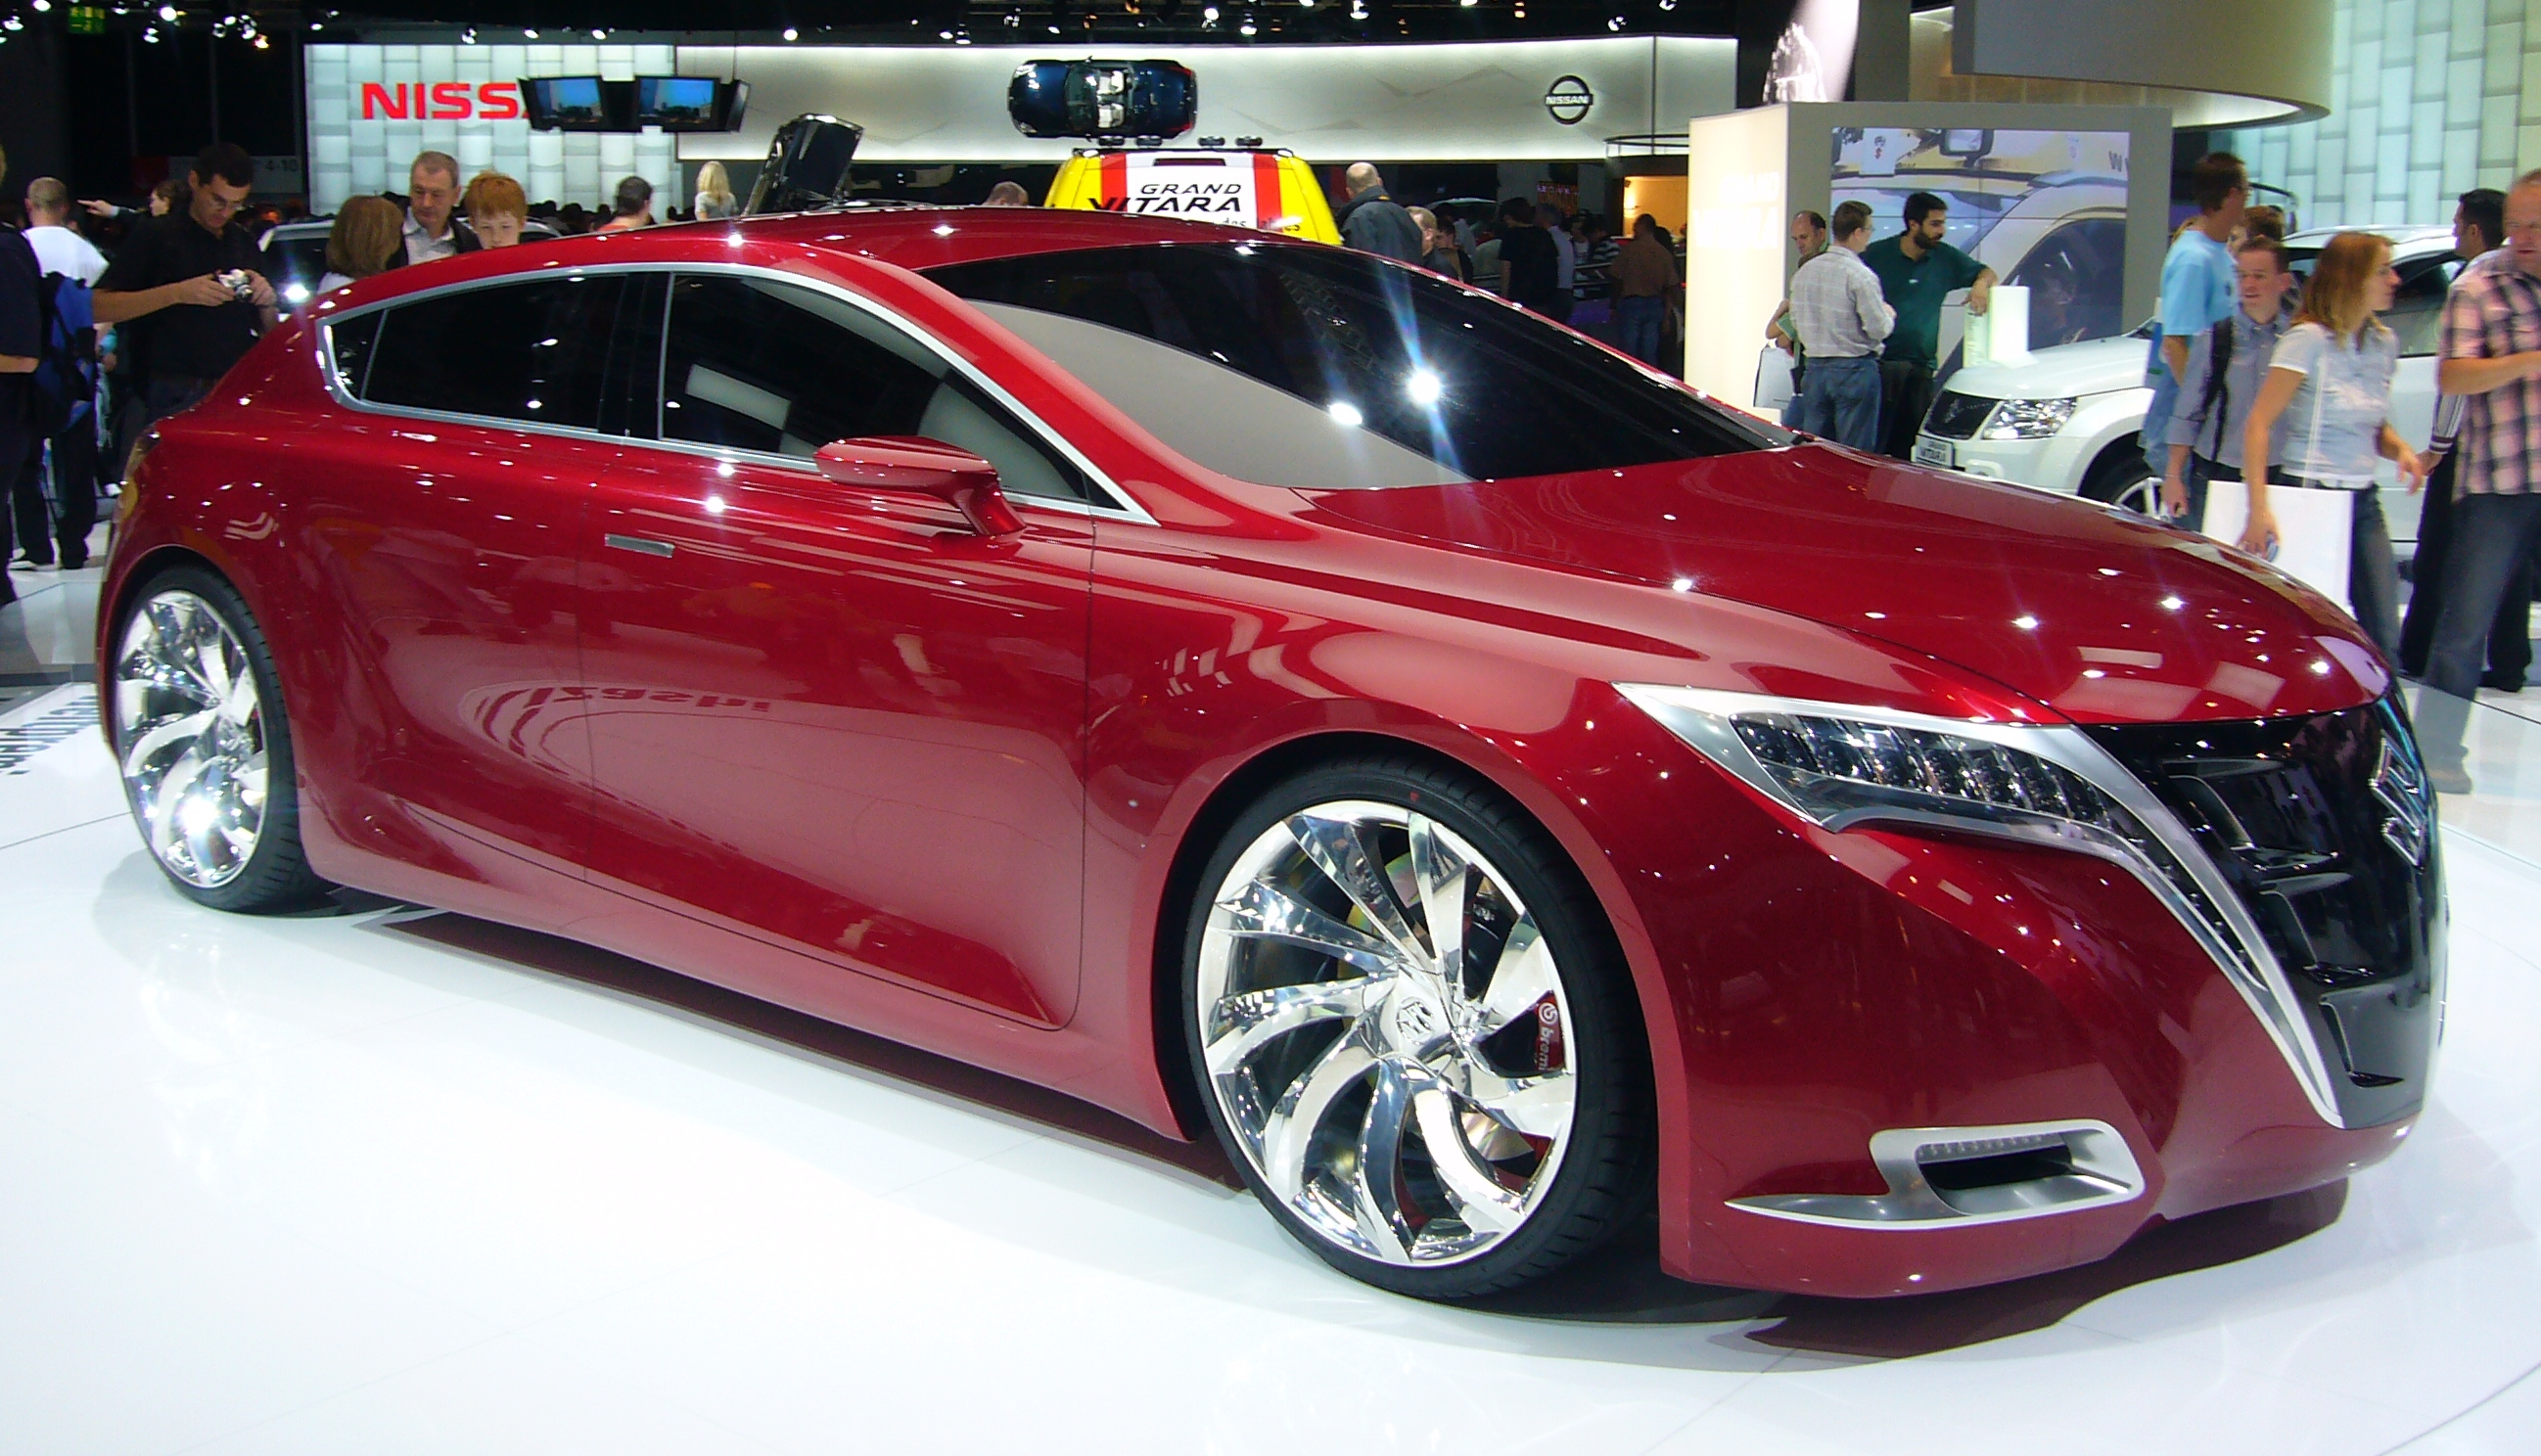 25 New Model Upcoming Cars in Pakistan 2019 Price Release